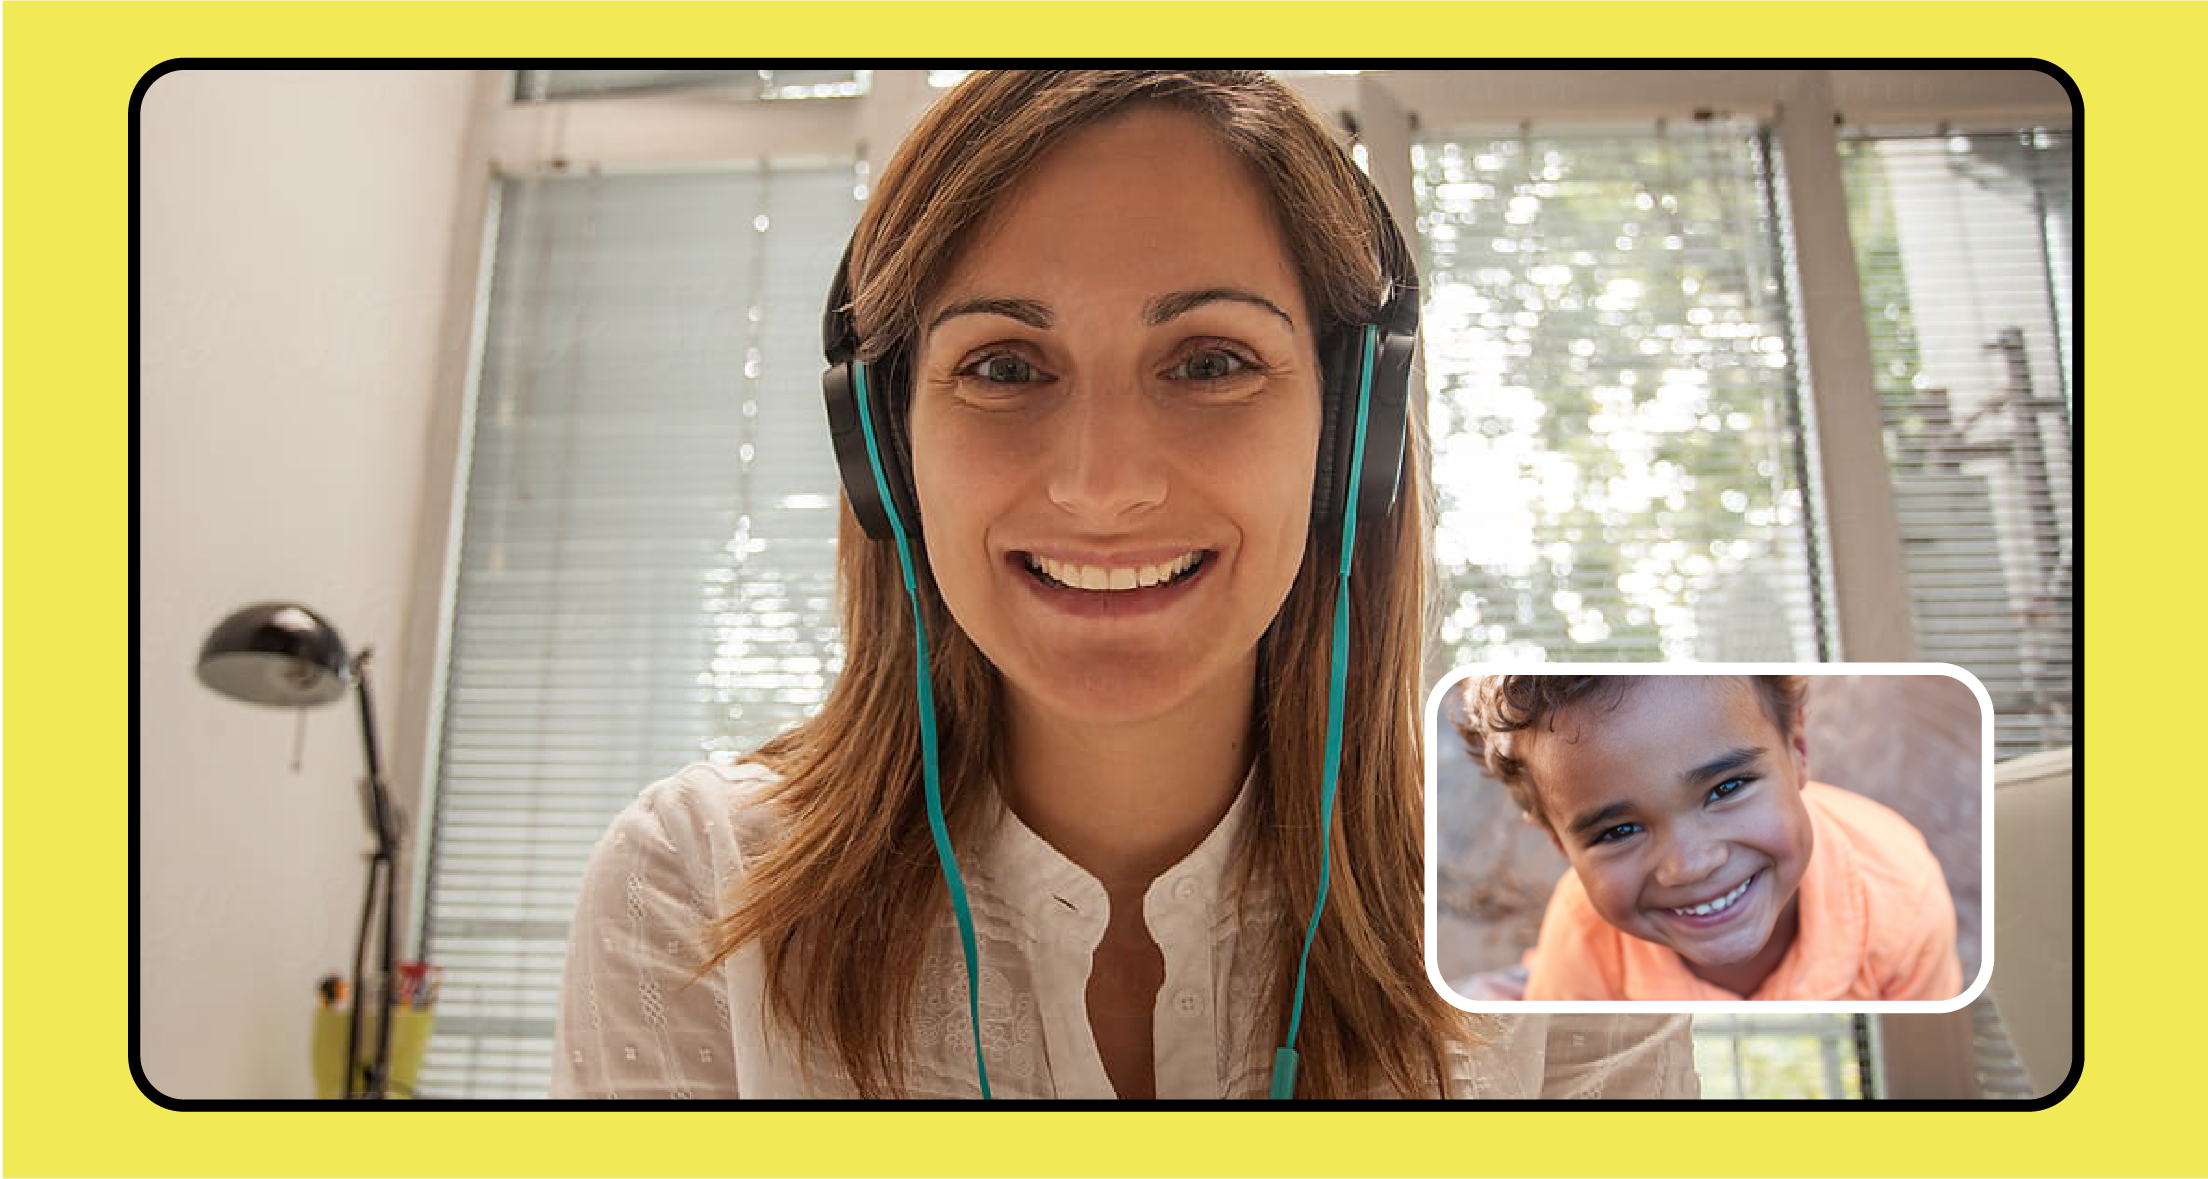 A yellow graphic with a screenshot of a video call between a young child and a learning partner